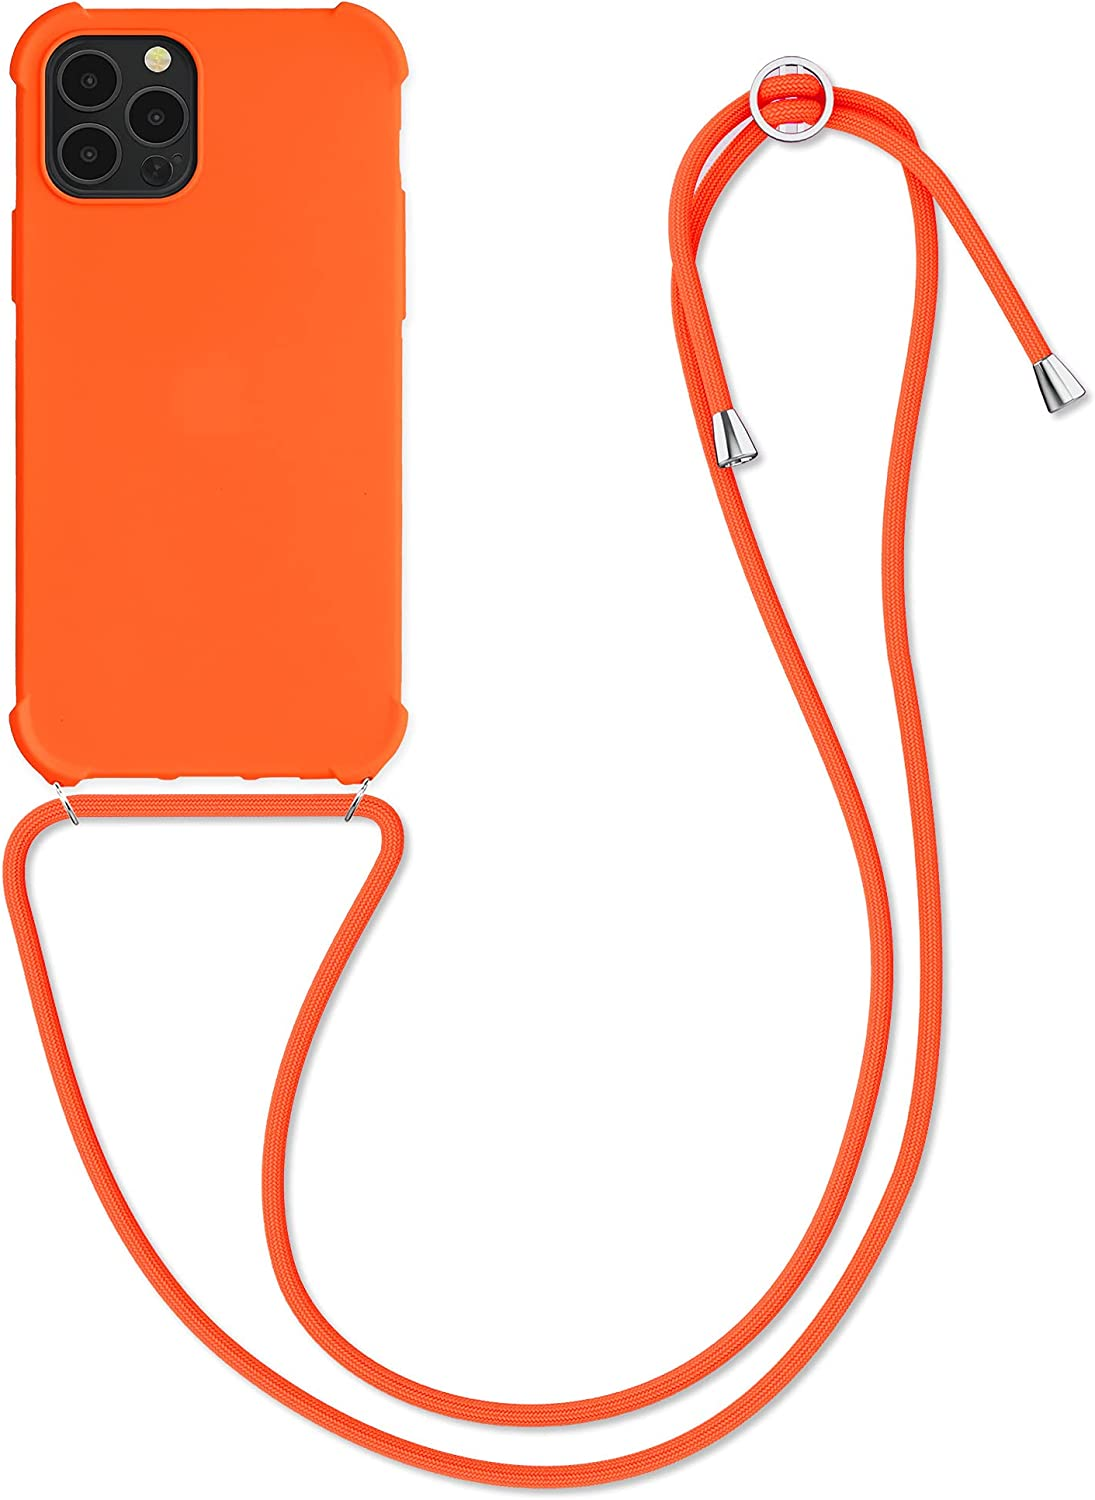 kwmobile Case Compatible with Apple iPhone 12/12 Pro - Crossbody Case Soft Matte TPU Phone Holder with Neck Strap - Cosmic Orange